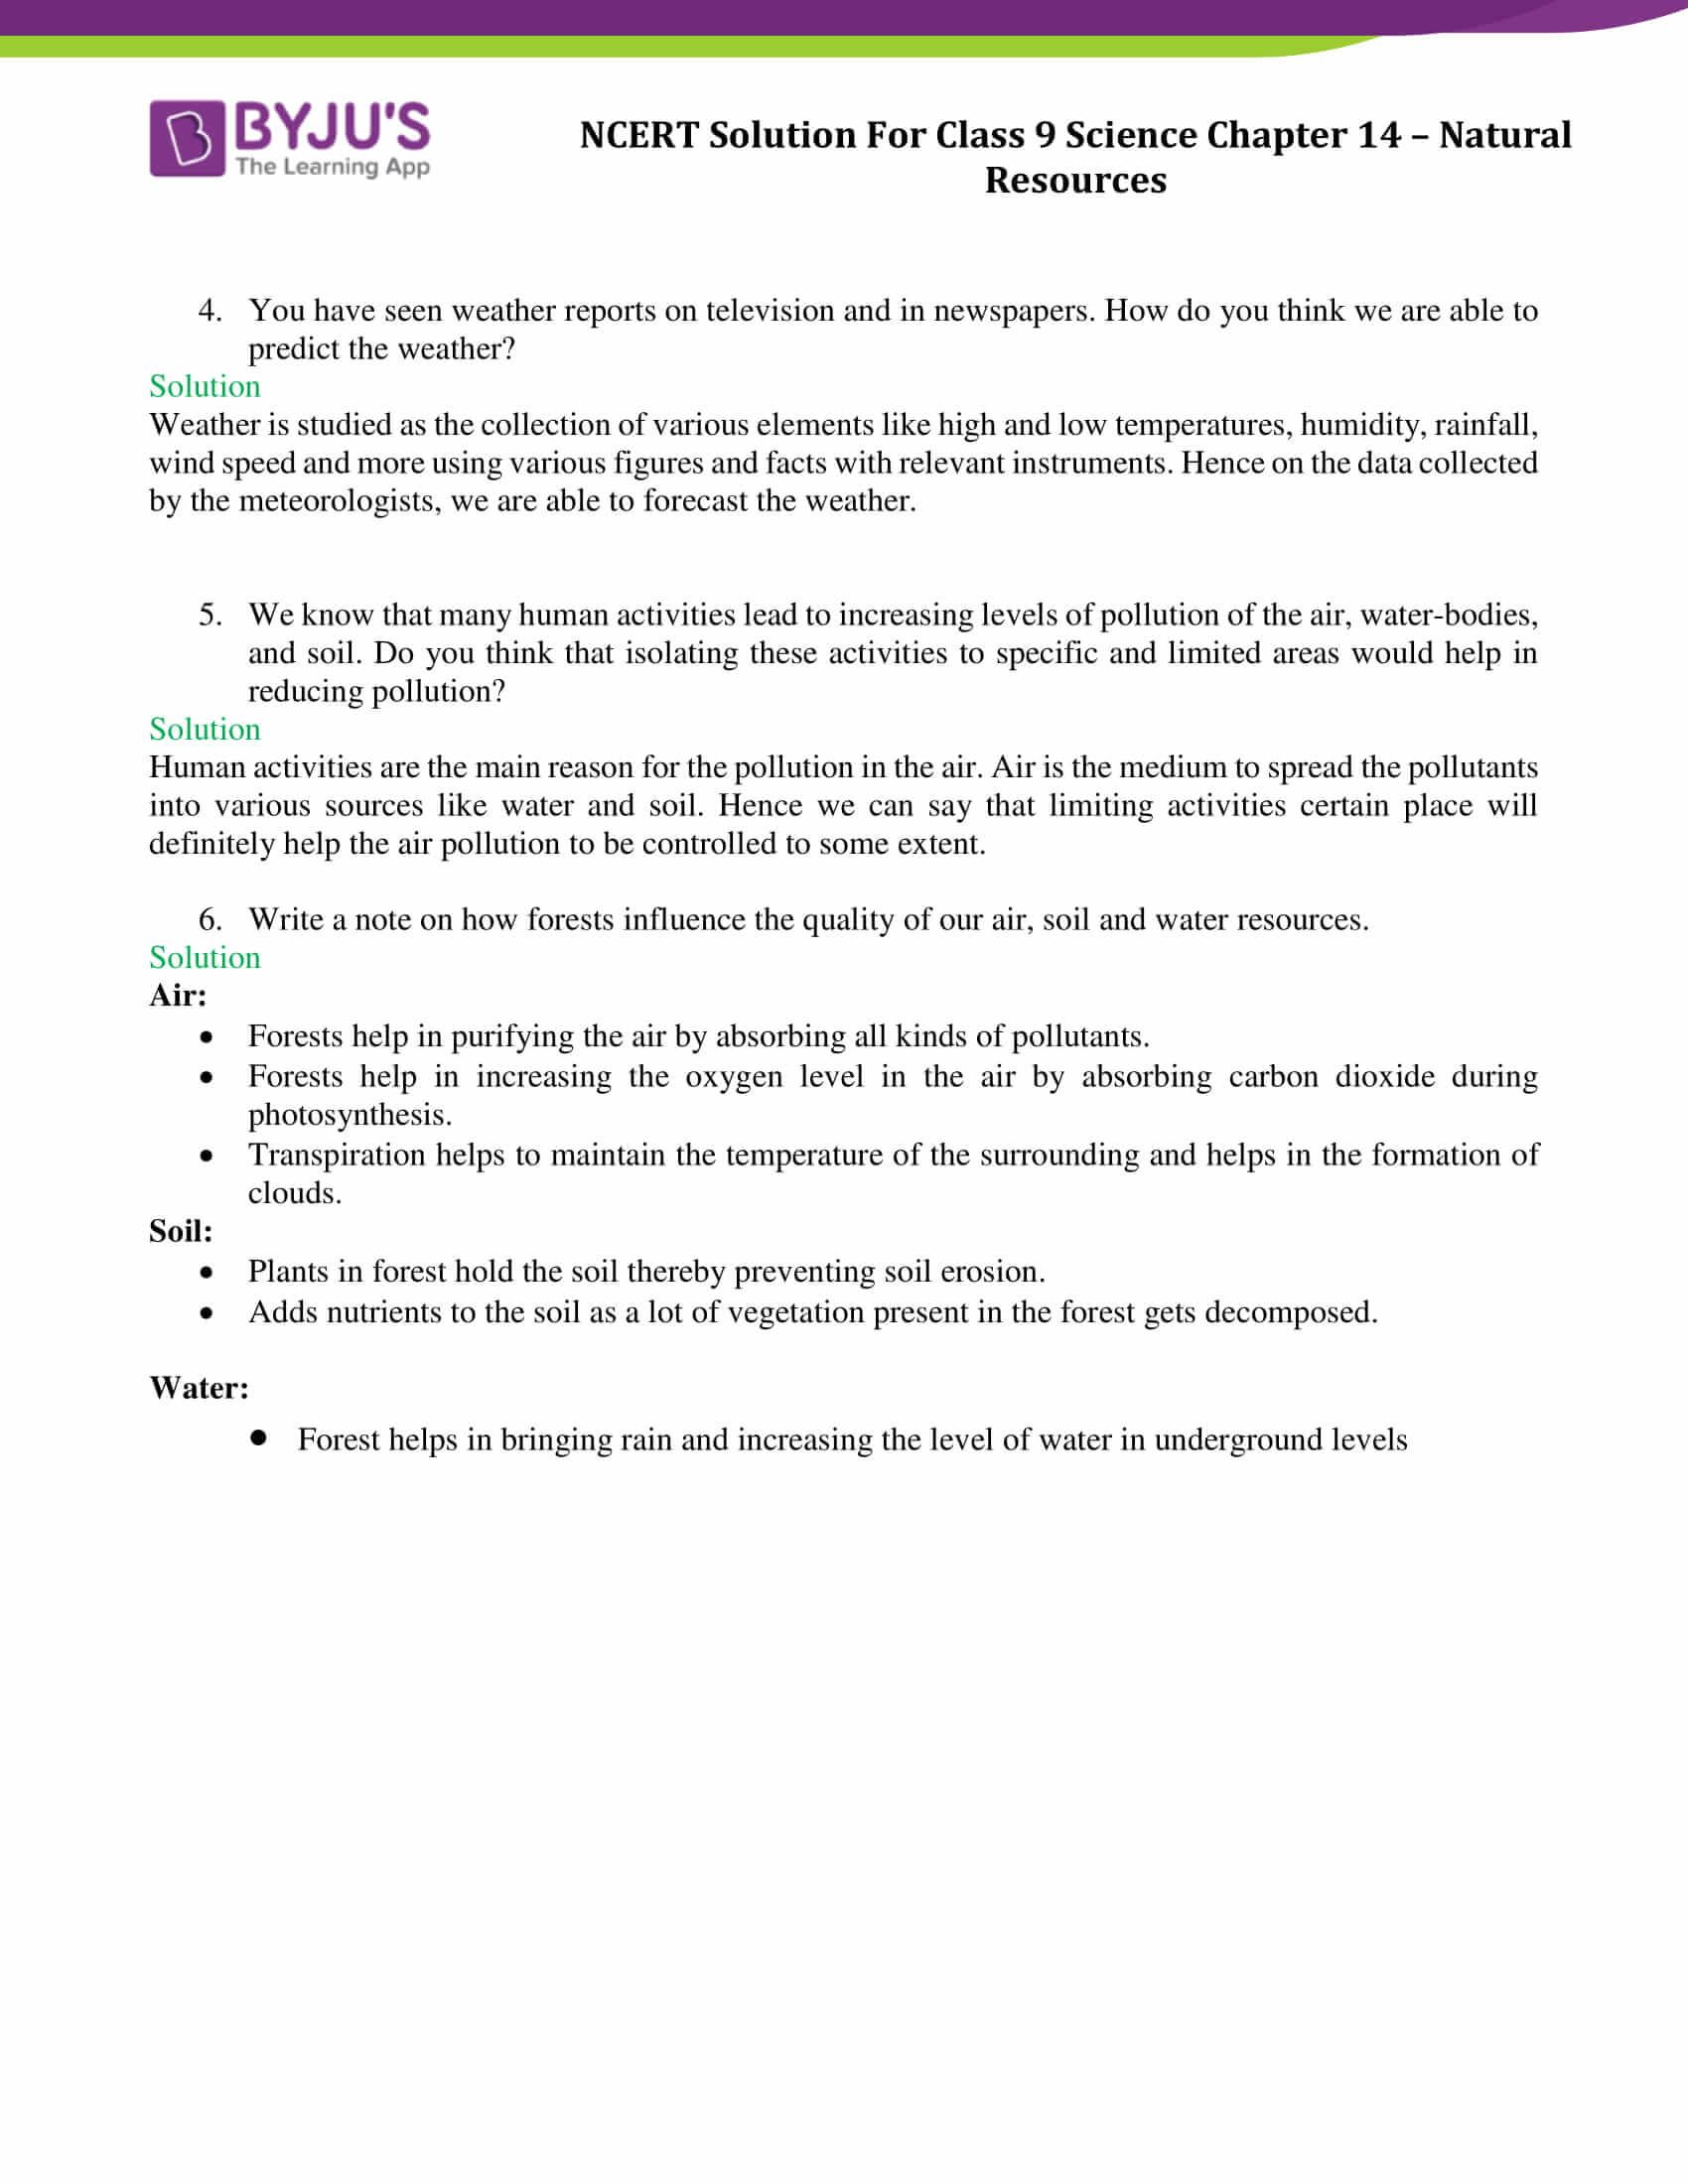 NCERT Solutions Class 9 Science Chapter 14 Natural ...